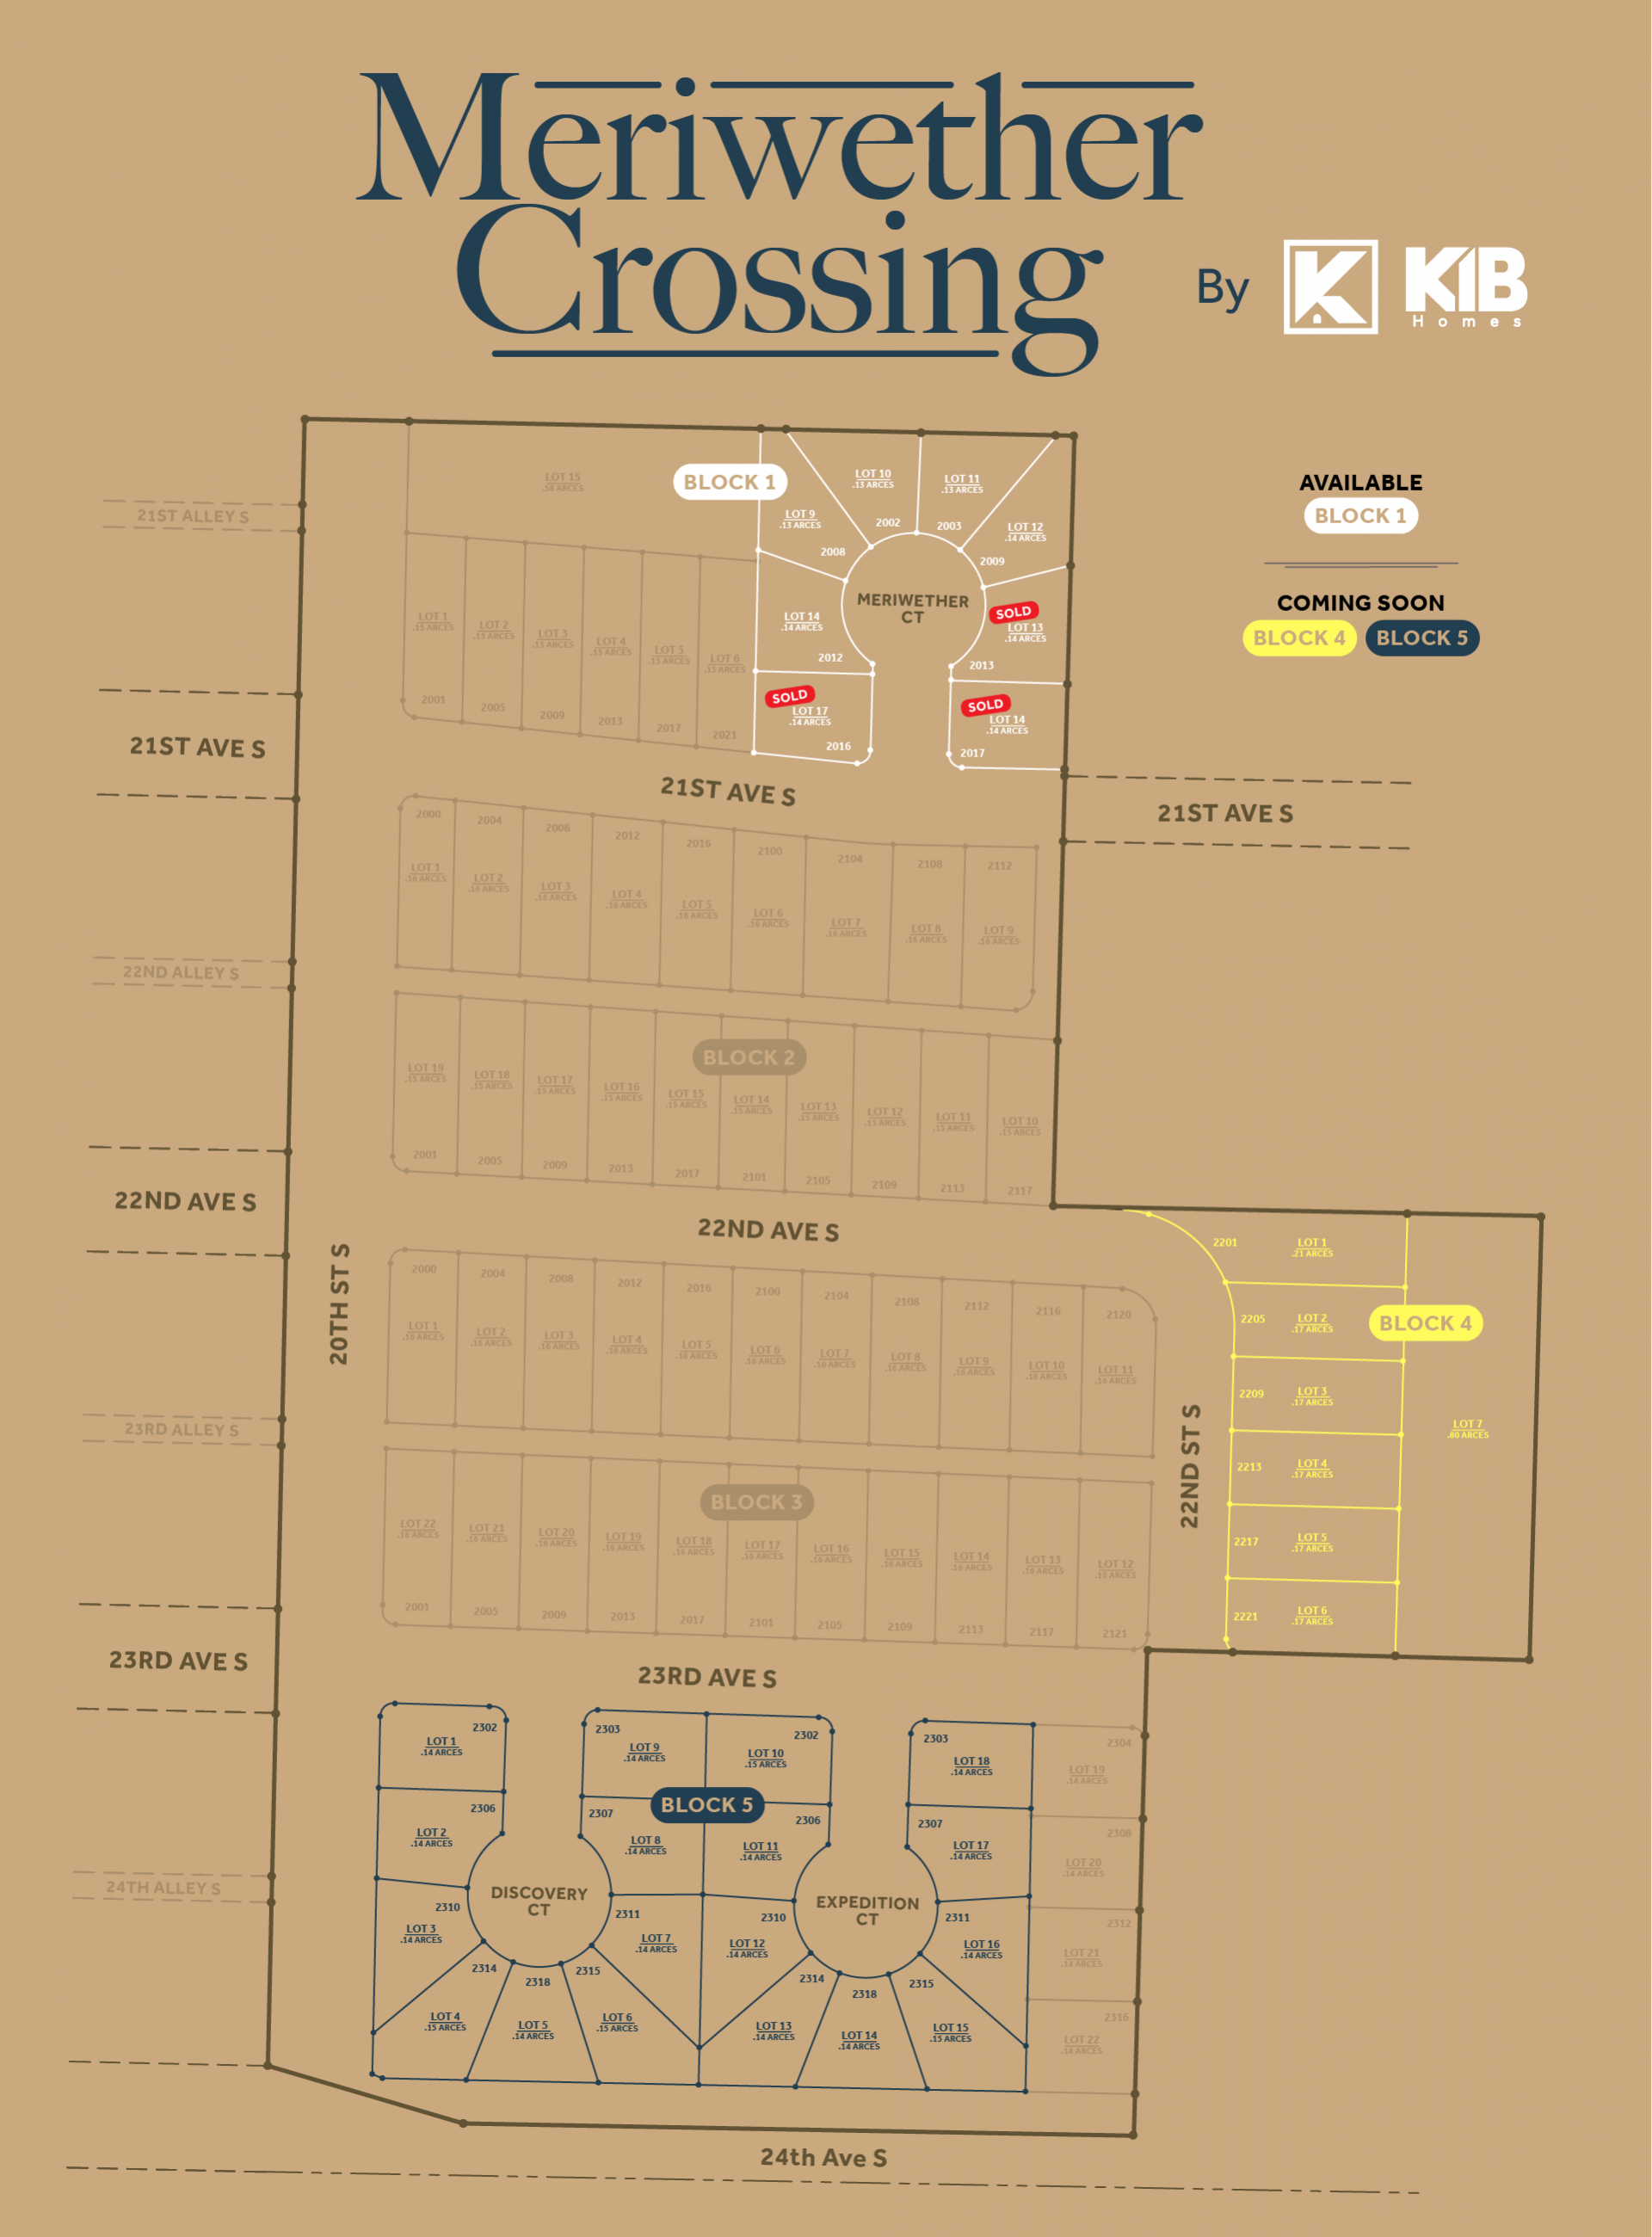 http://kibhomes.com/wp-content/uploads/2020/05/KIB-Meriwether-Crossing-Available-Lots-Map-1920x2600-v2-1920x2600.png